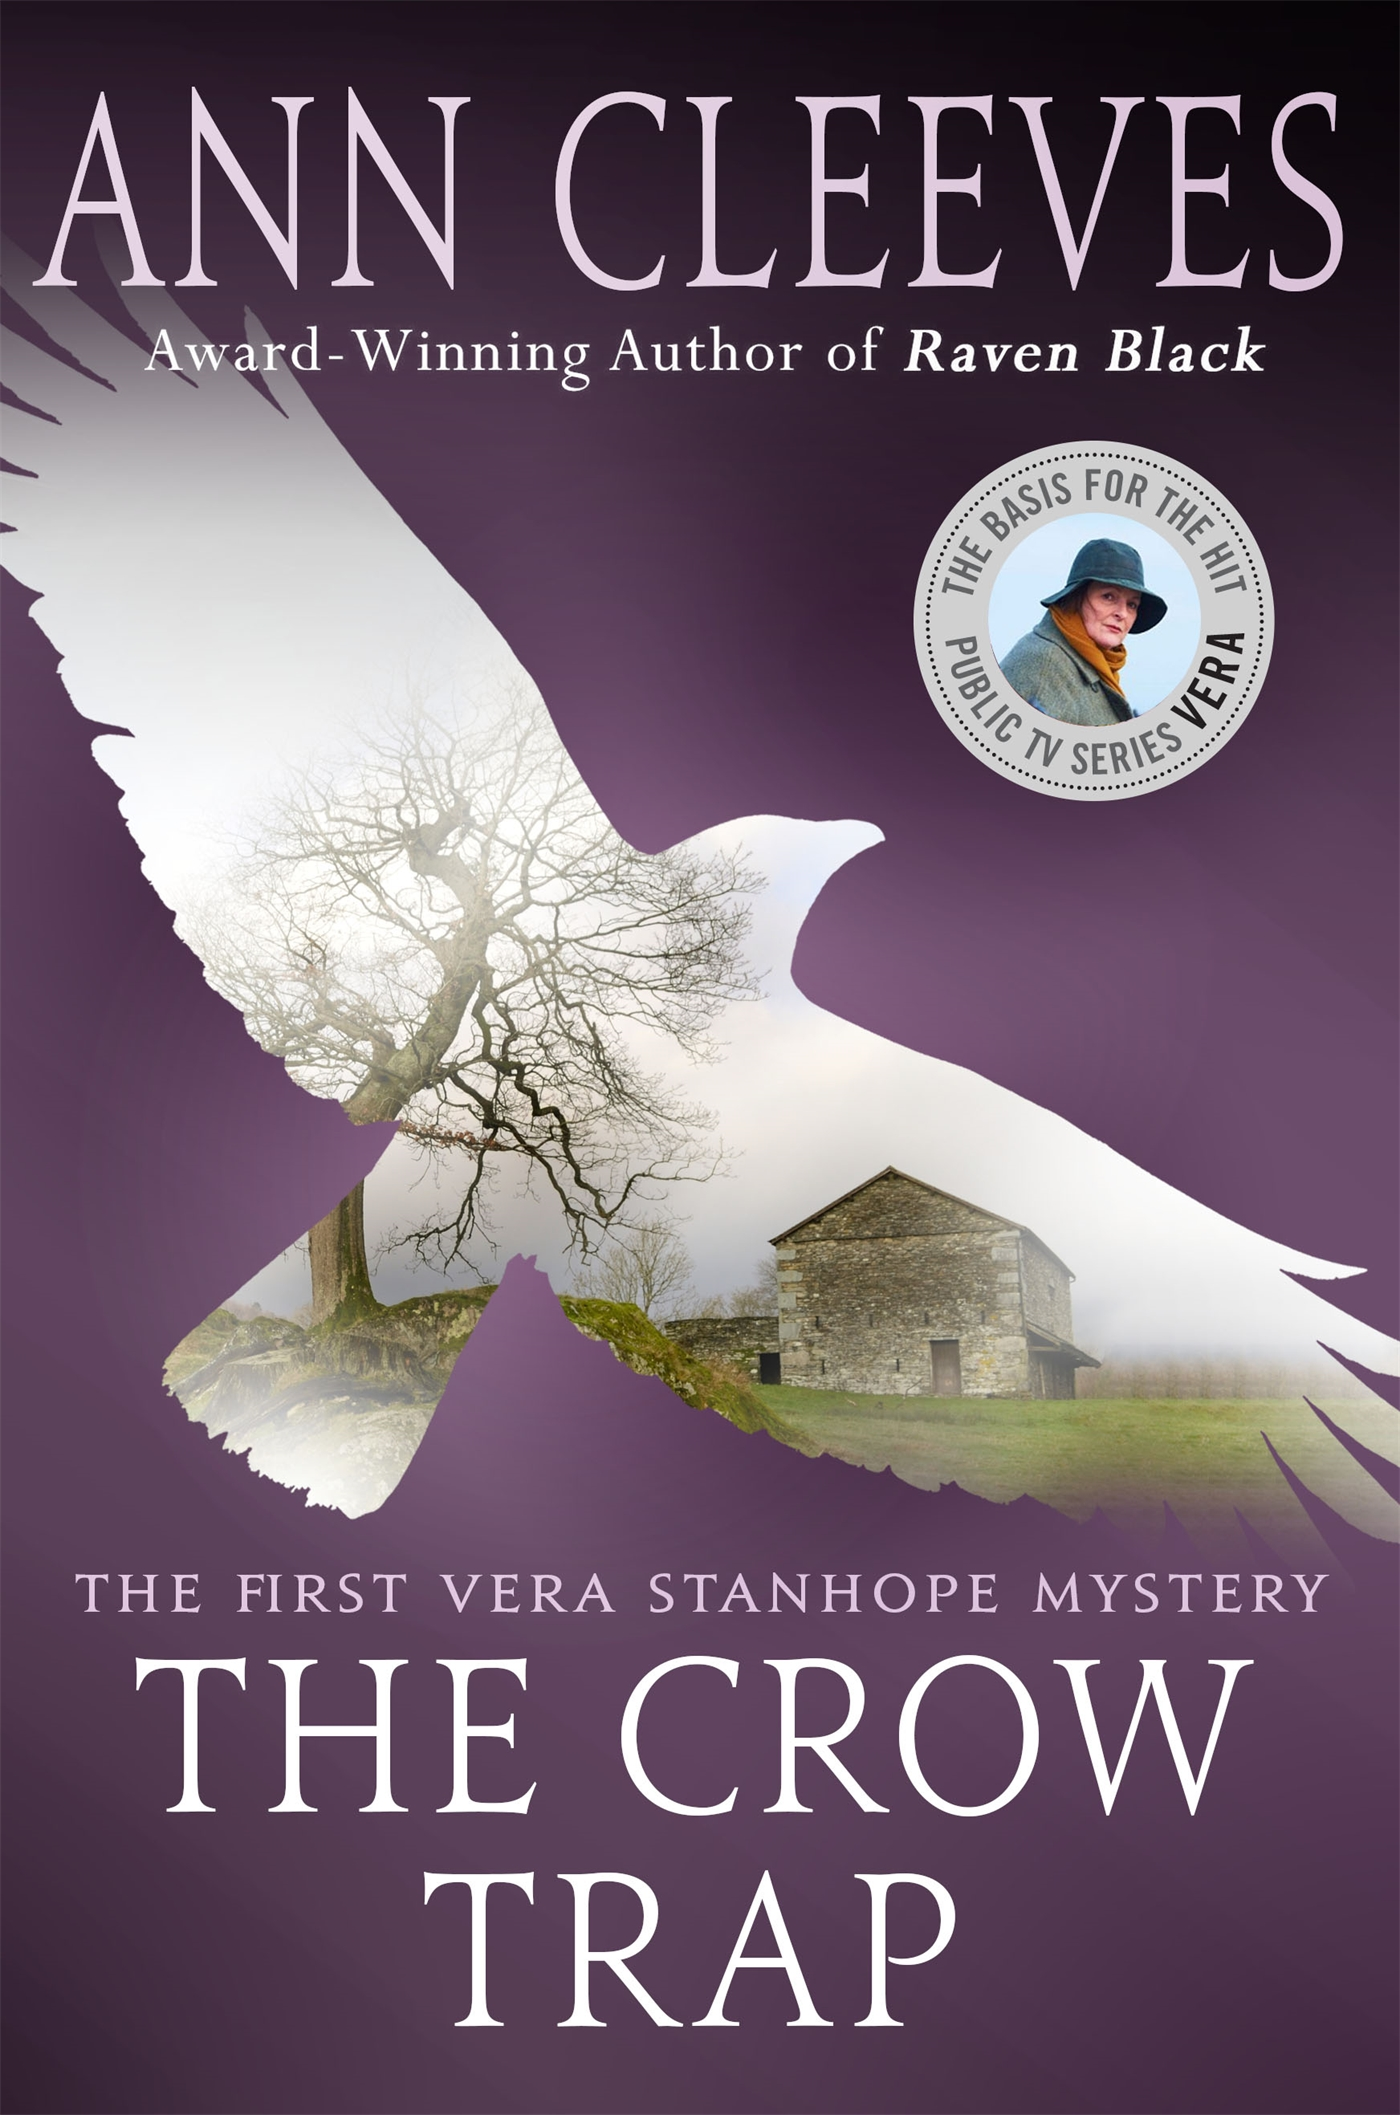 The Crow Trap [electronic resource] : The First Vera Stanhope Mystery